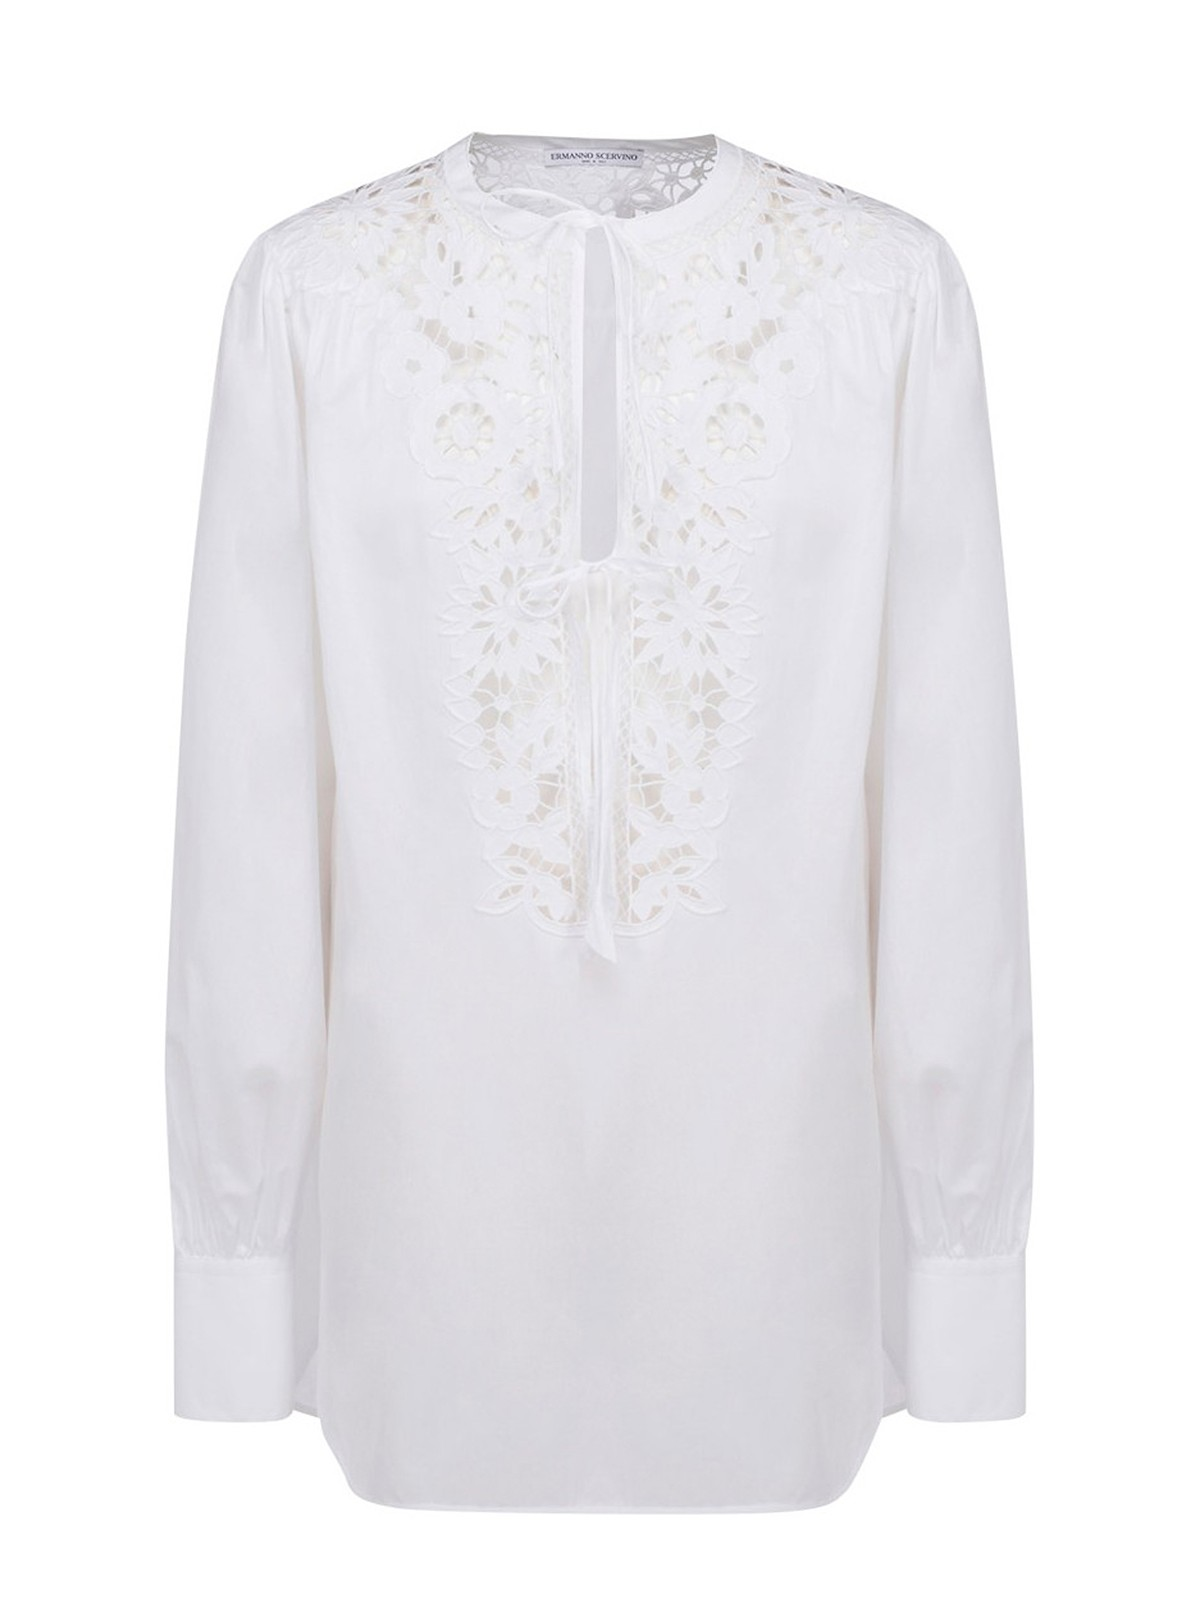 Ermanno Scervino BRODERIE ANGLAISE FRONT BLOUSE